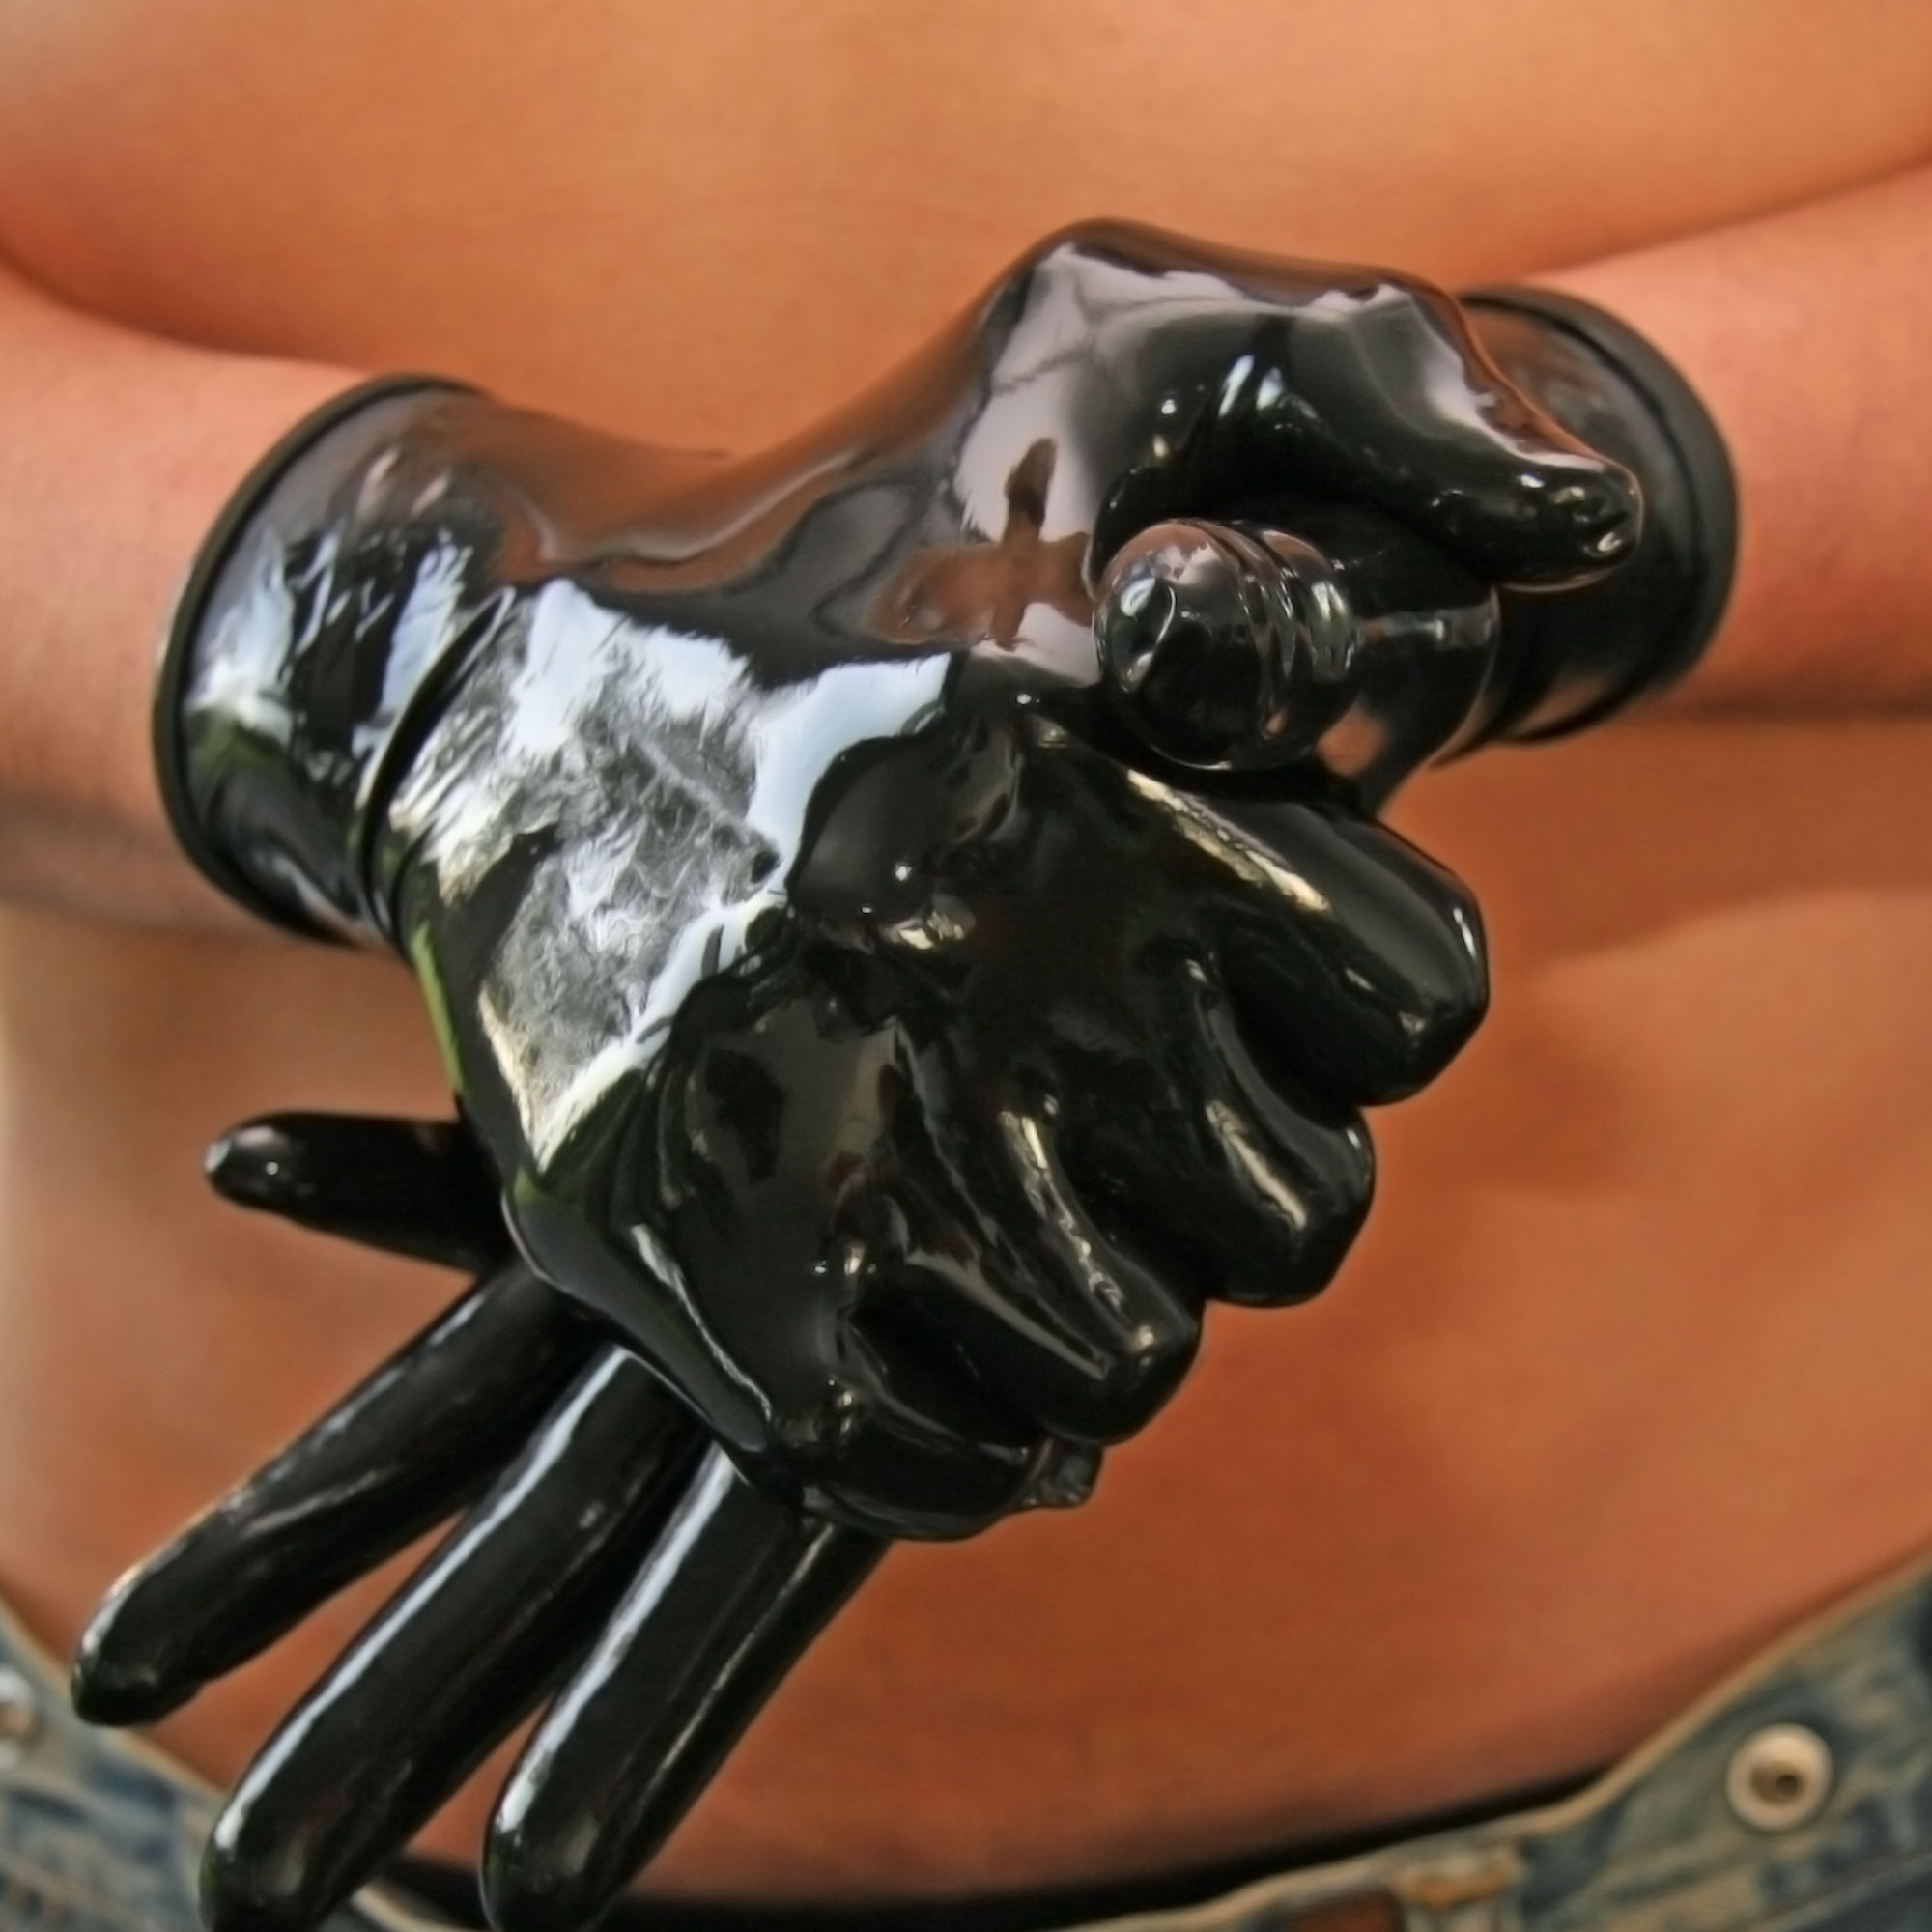 Fisting with latex hand